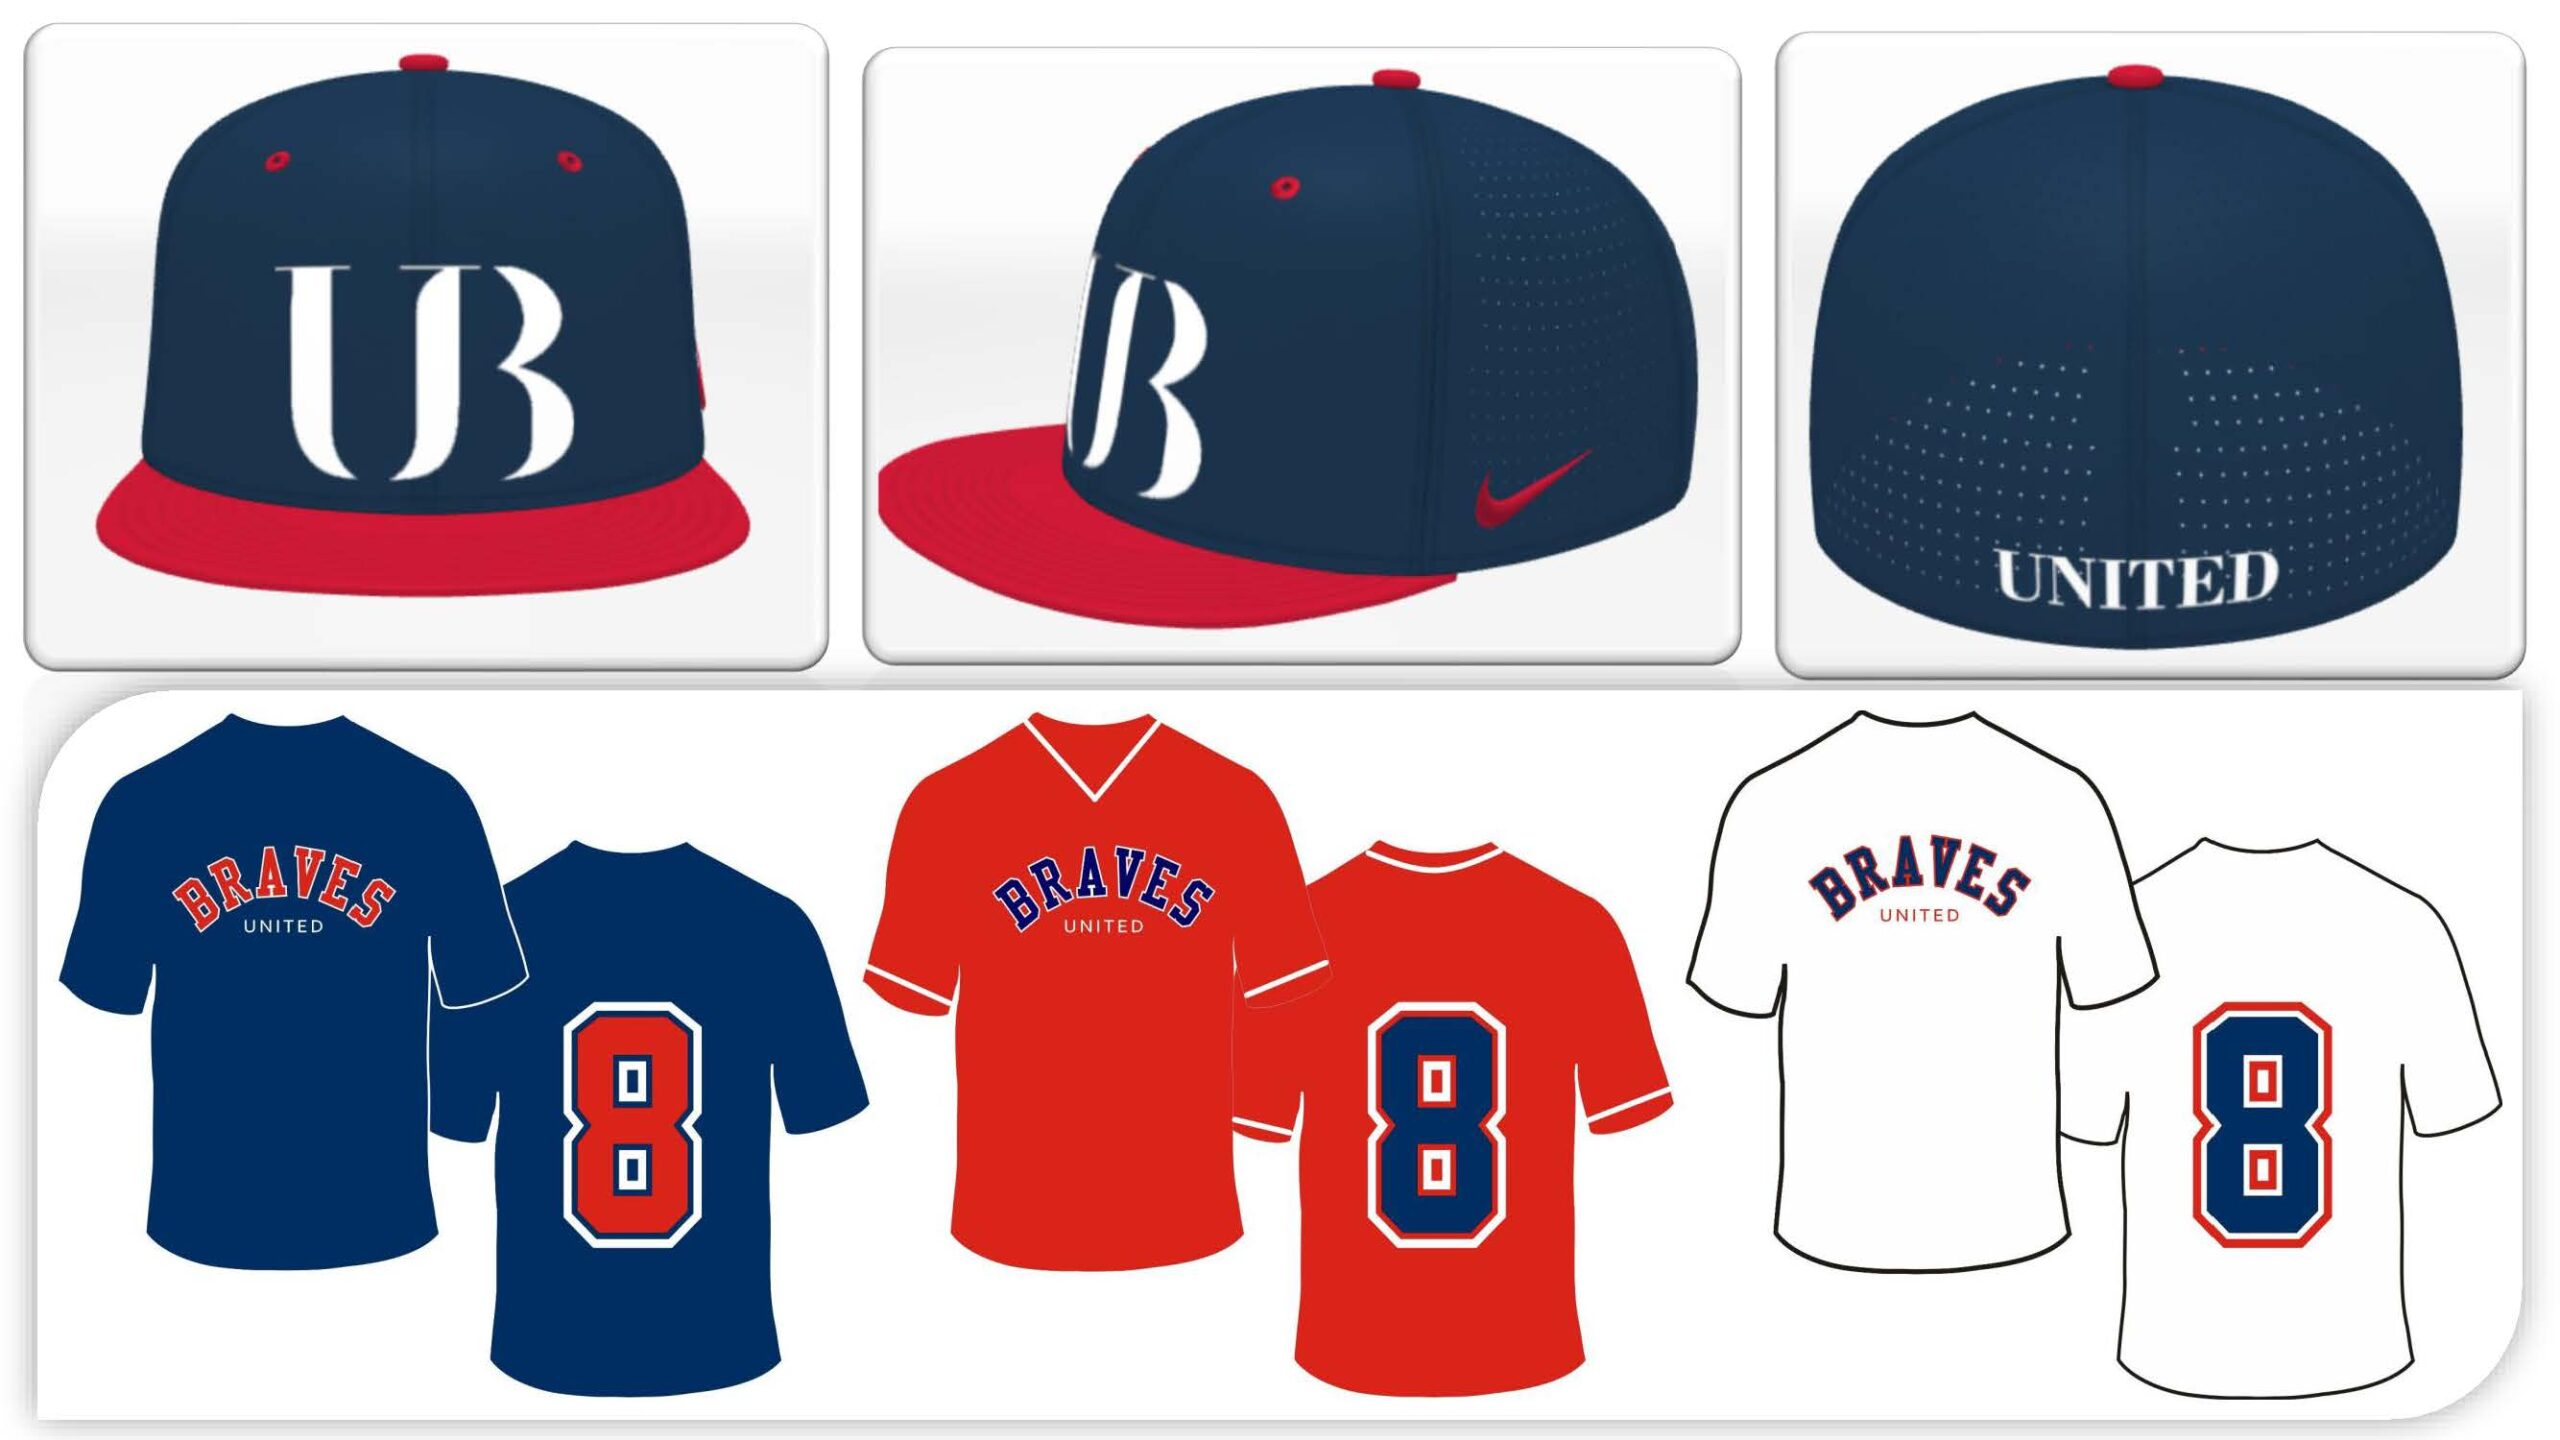 Braves Uniforms